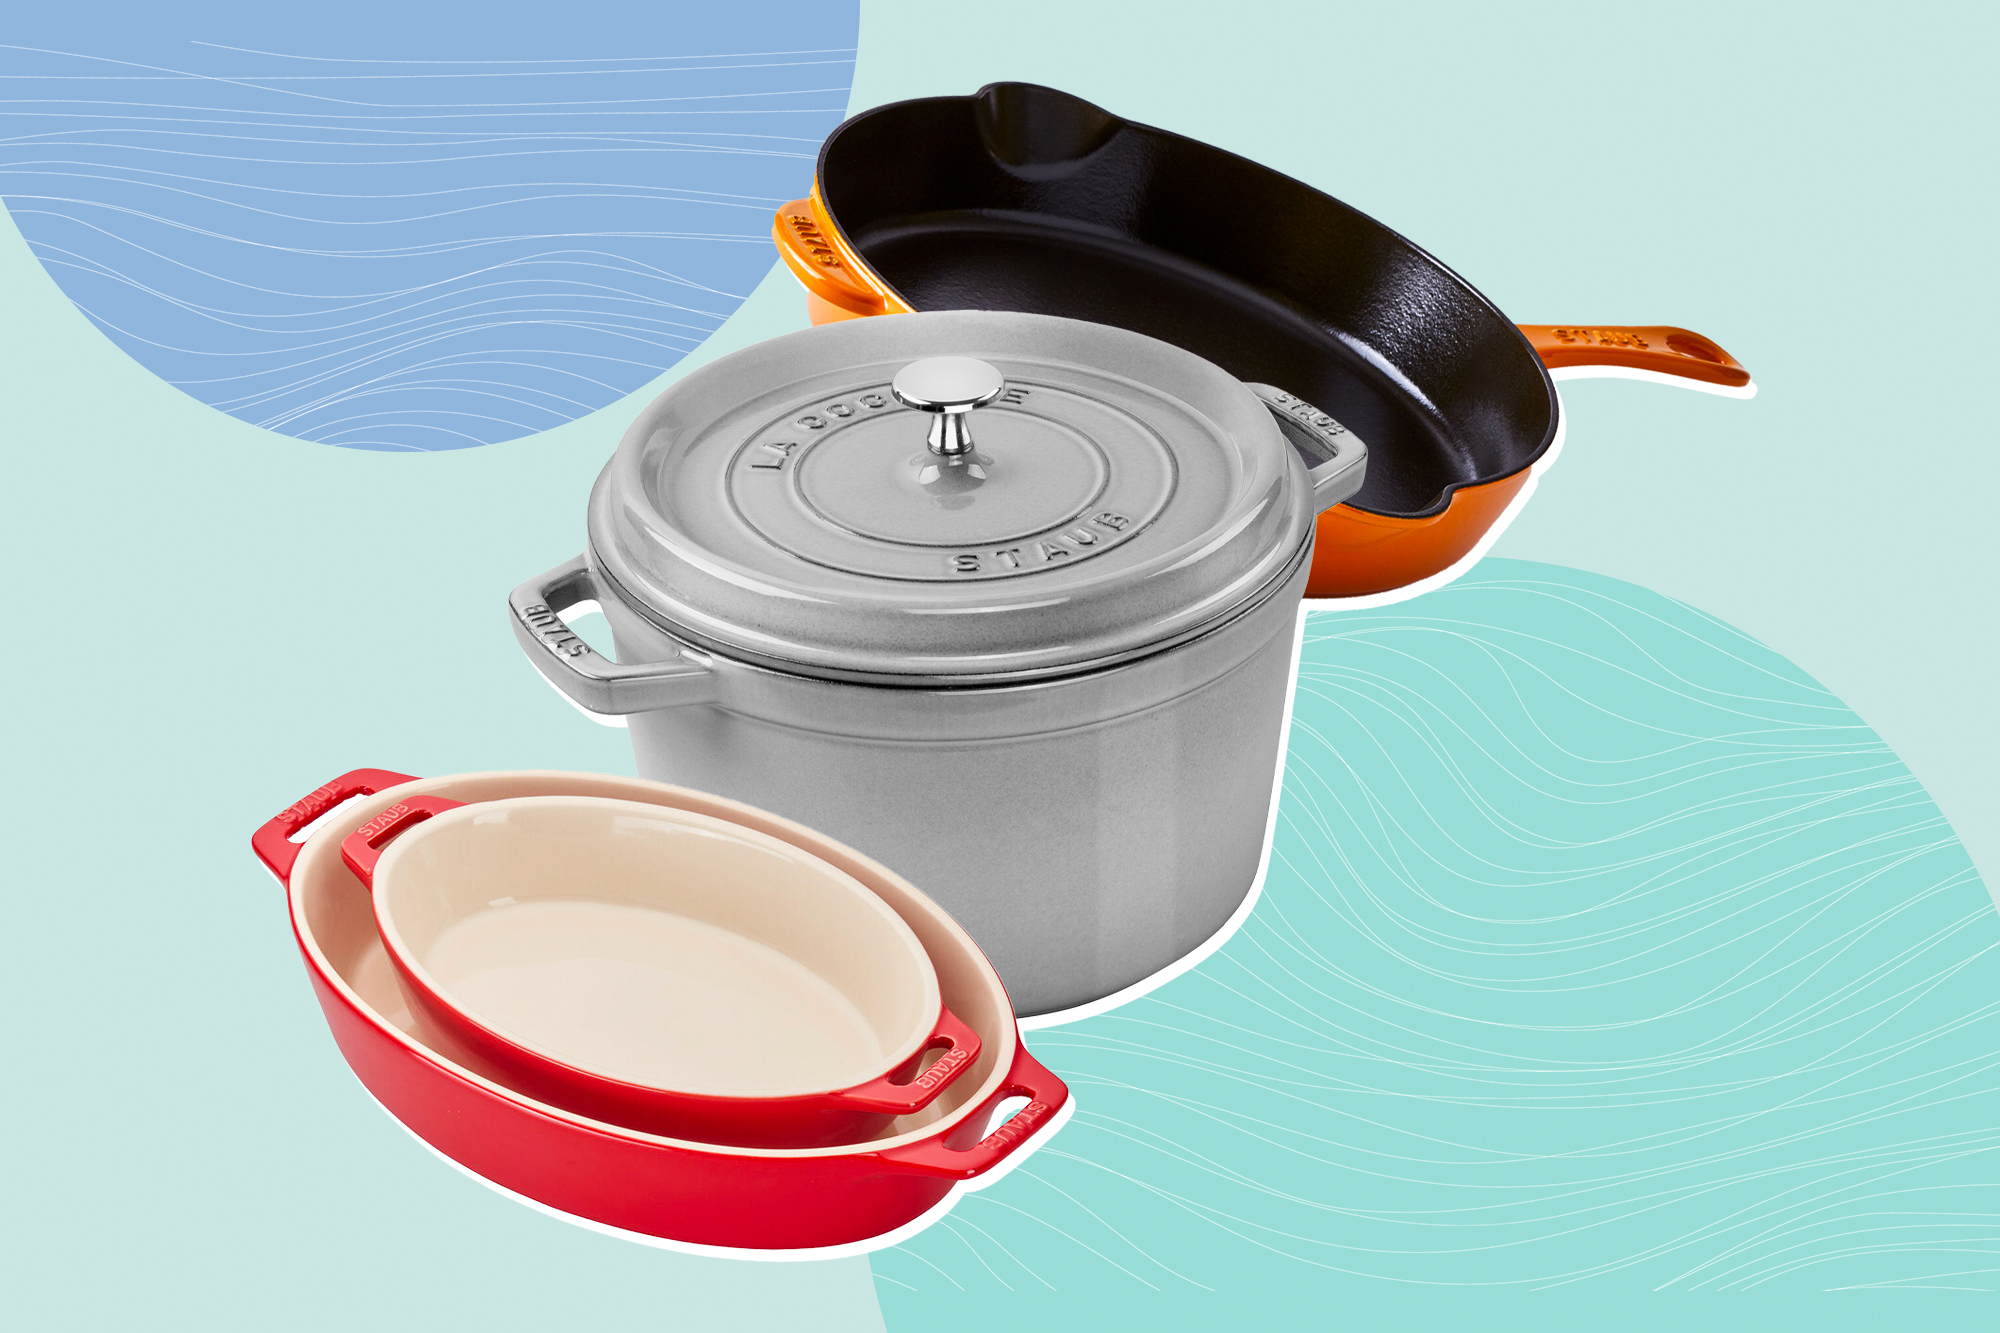 3 Staub cast iron pots and pans on a designed background